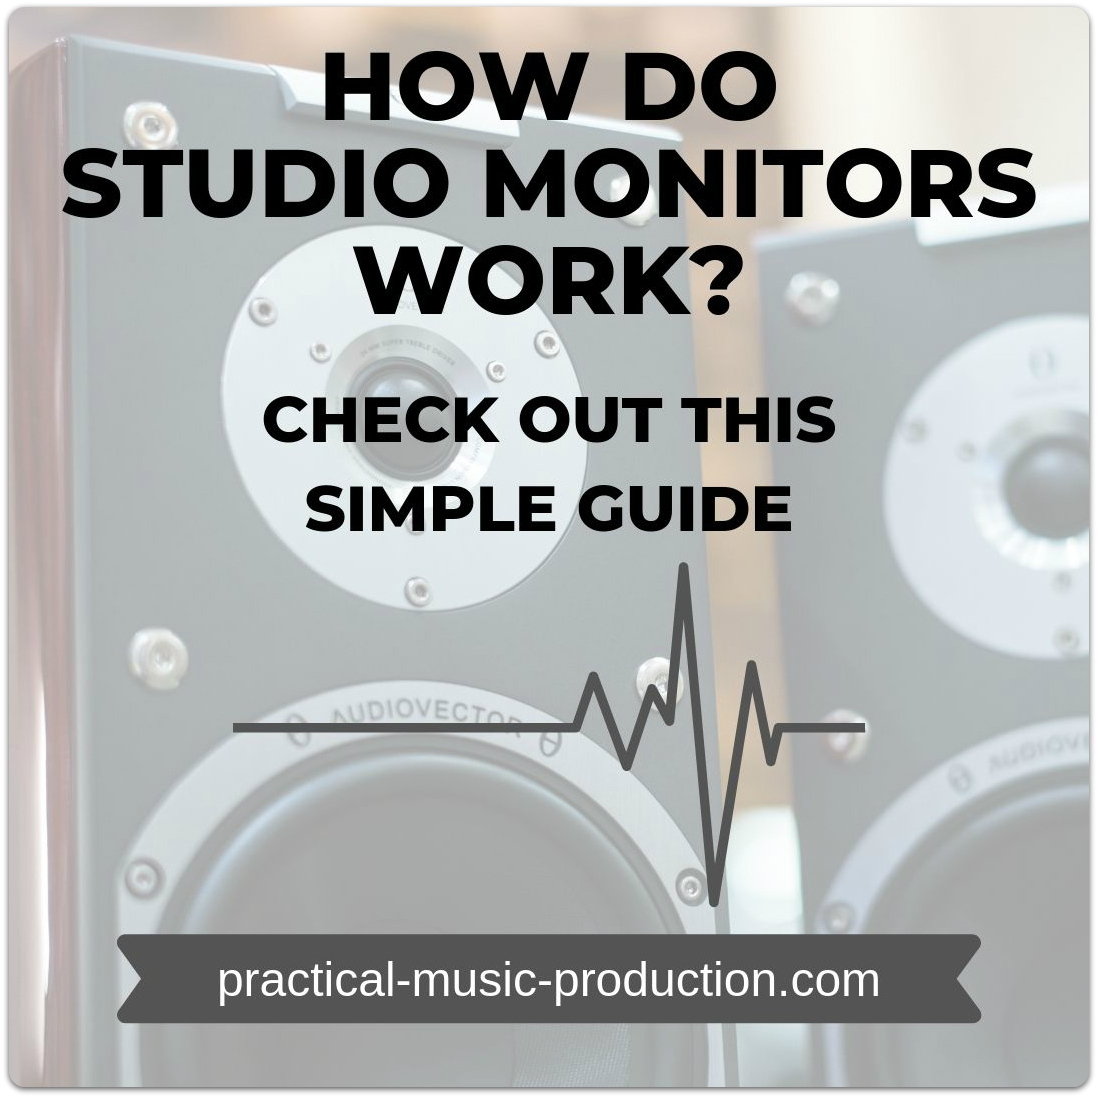 How do studio monitors work? Check out this simple guide to find out how